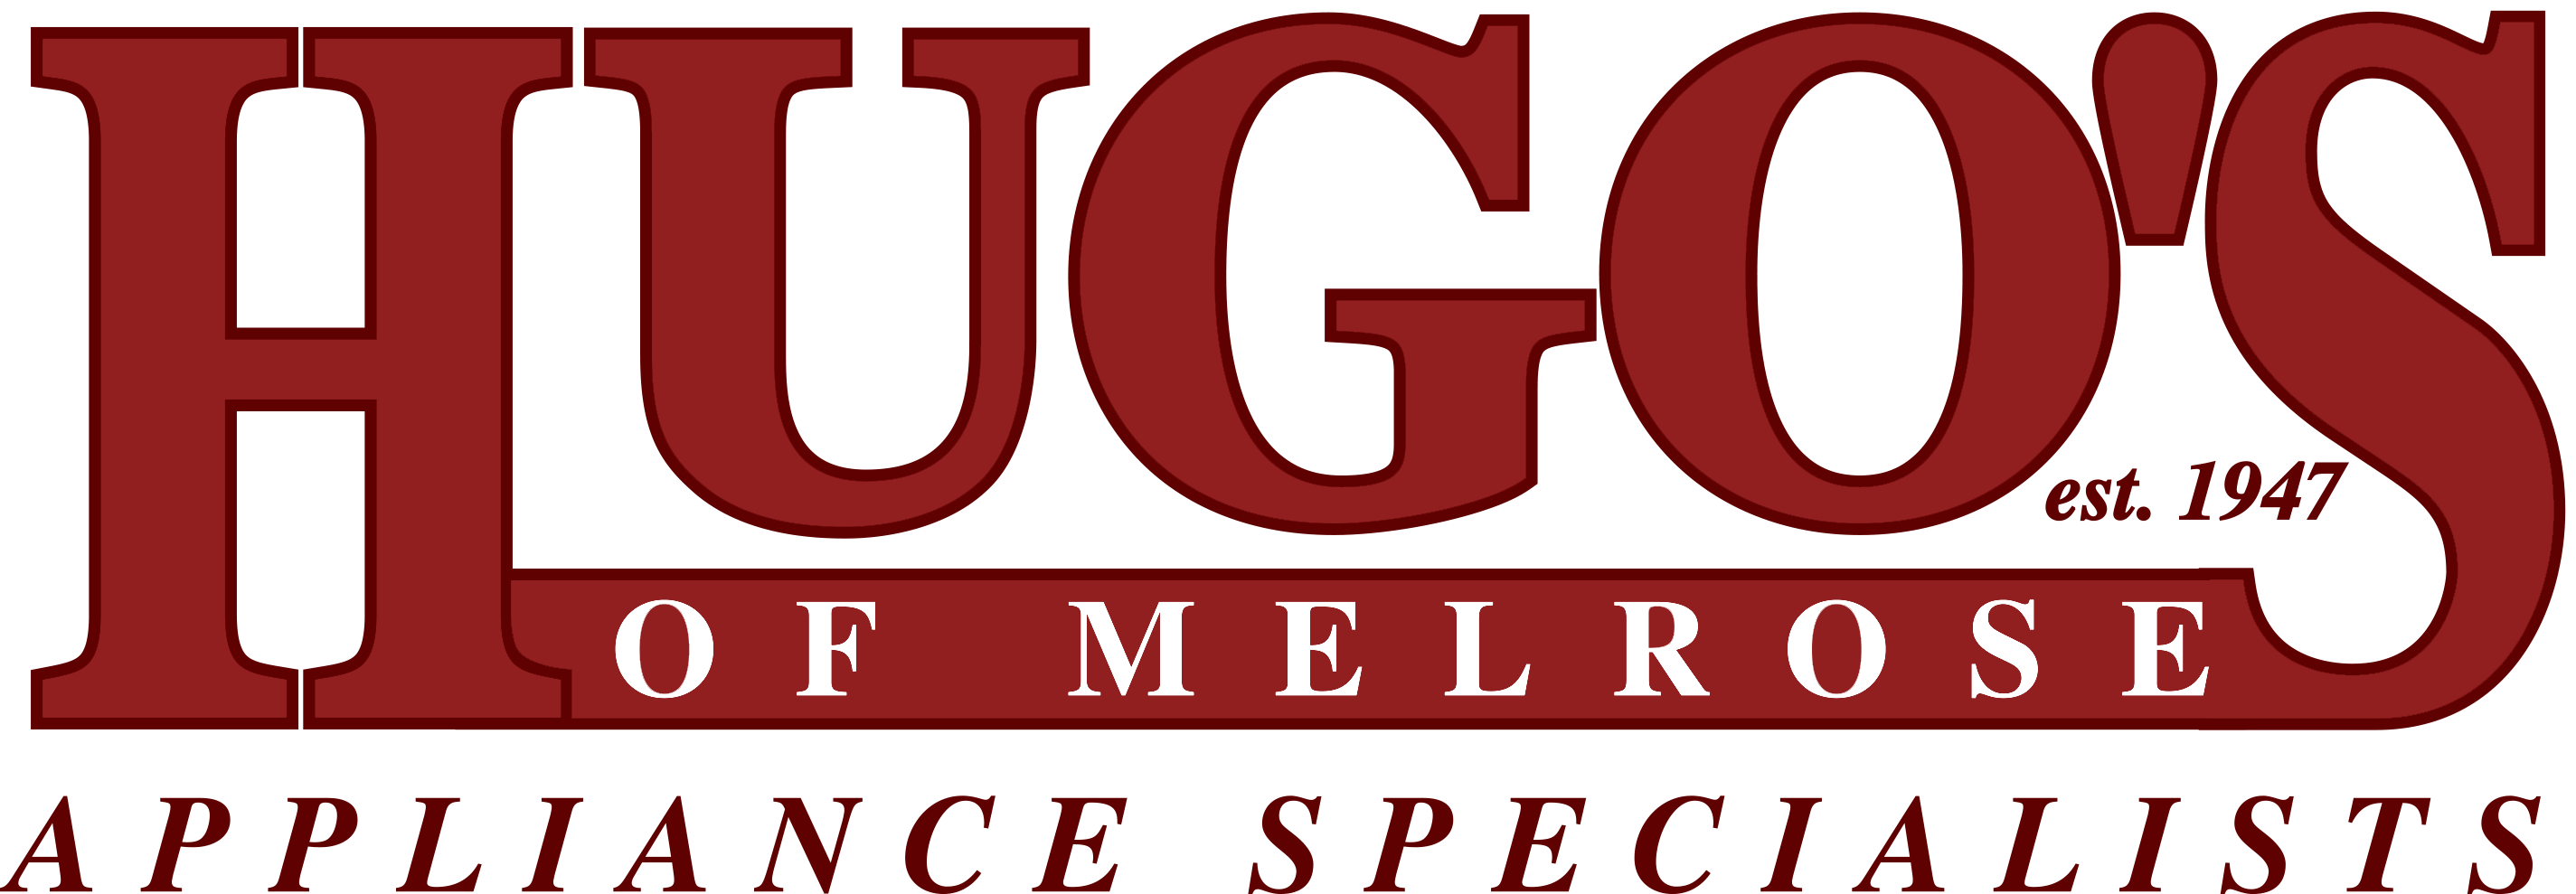 Hugo's Appliances Logo